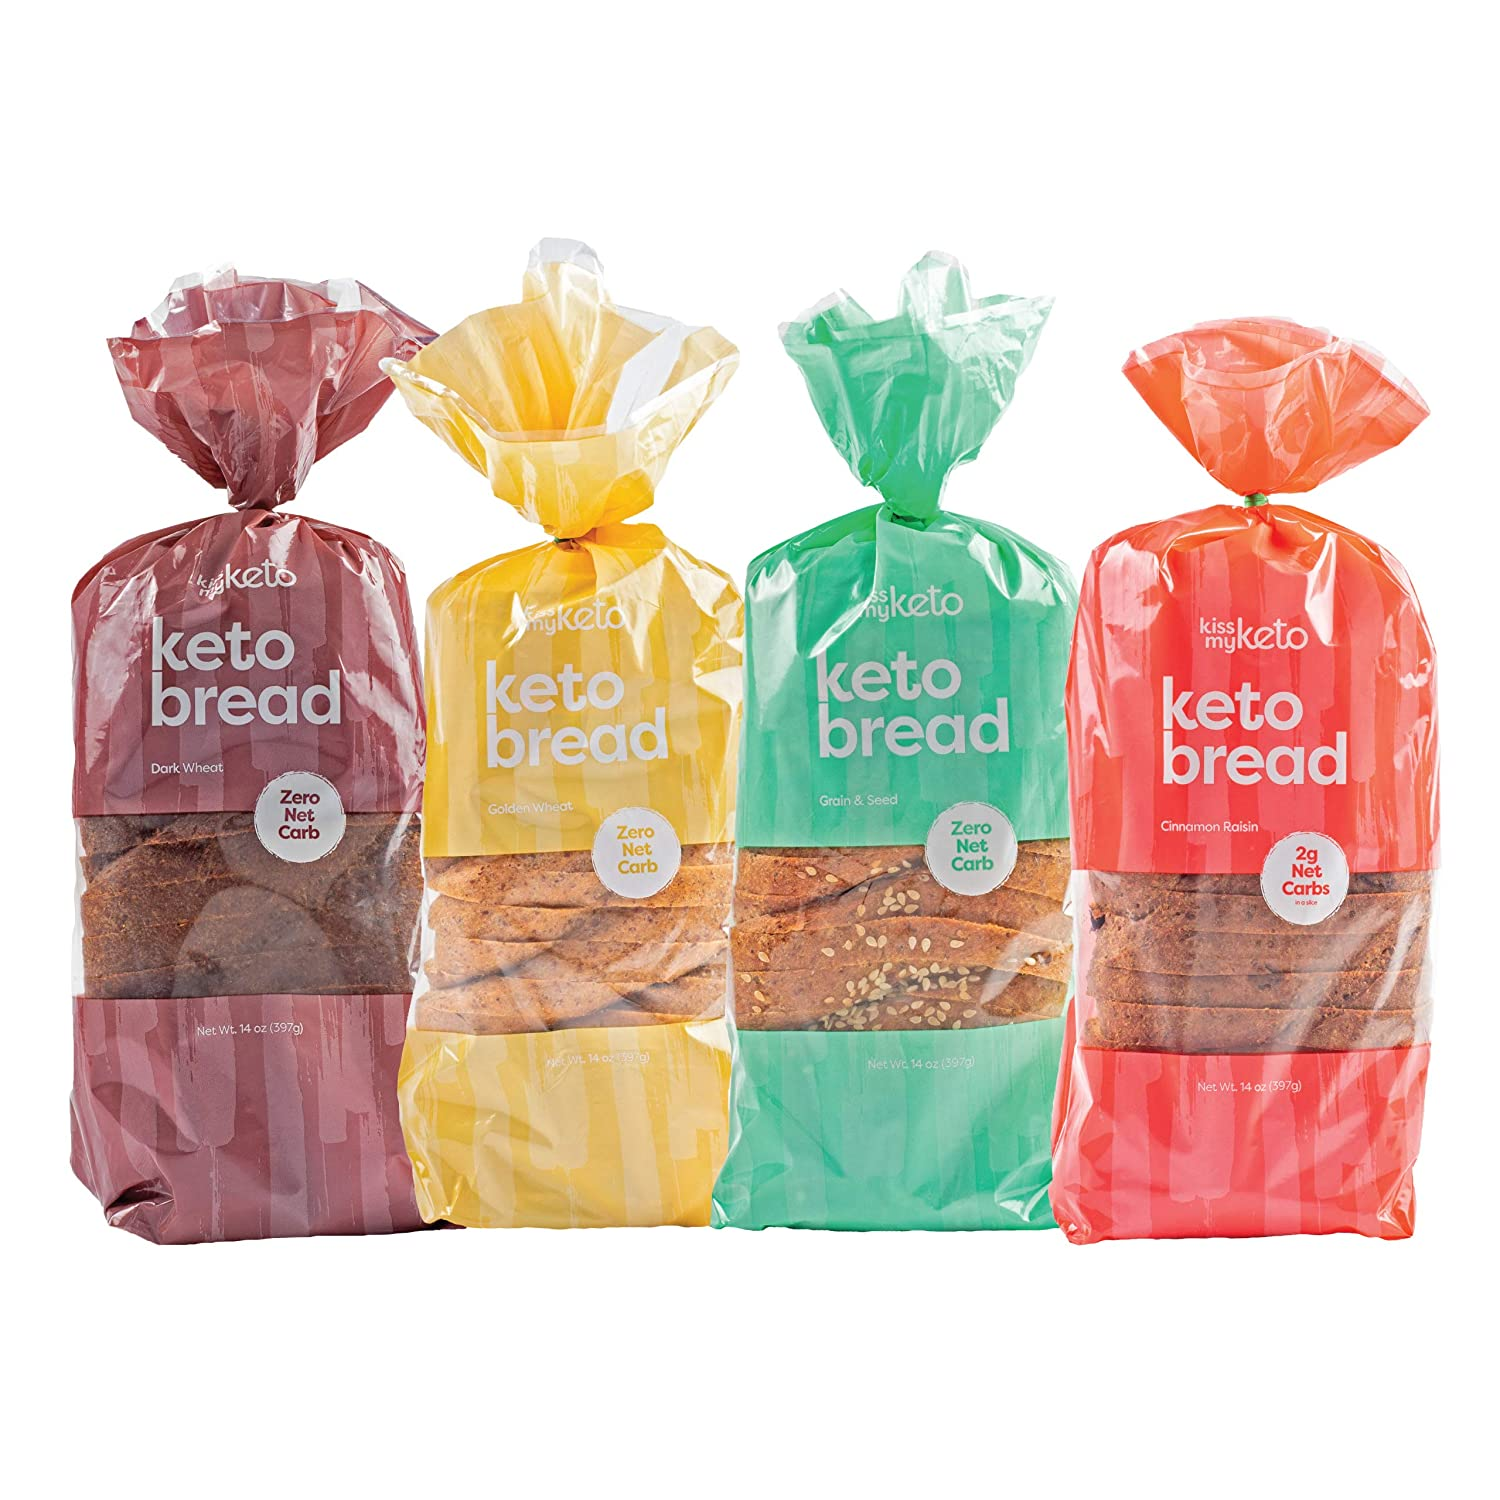 Kiss My Keto Bread — Zero Carb Bread (0g Net), 6g Protein / Slice | Sugar Free, Low Carb Bread | Low Calorie, No GMOs, Soy Free & 100% Carb Free 4-Pack Variety